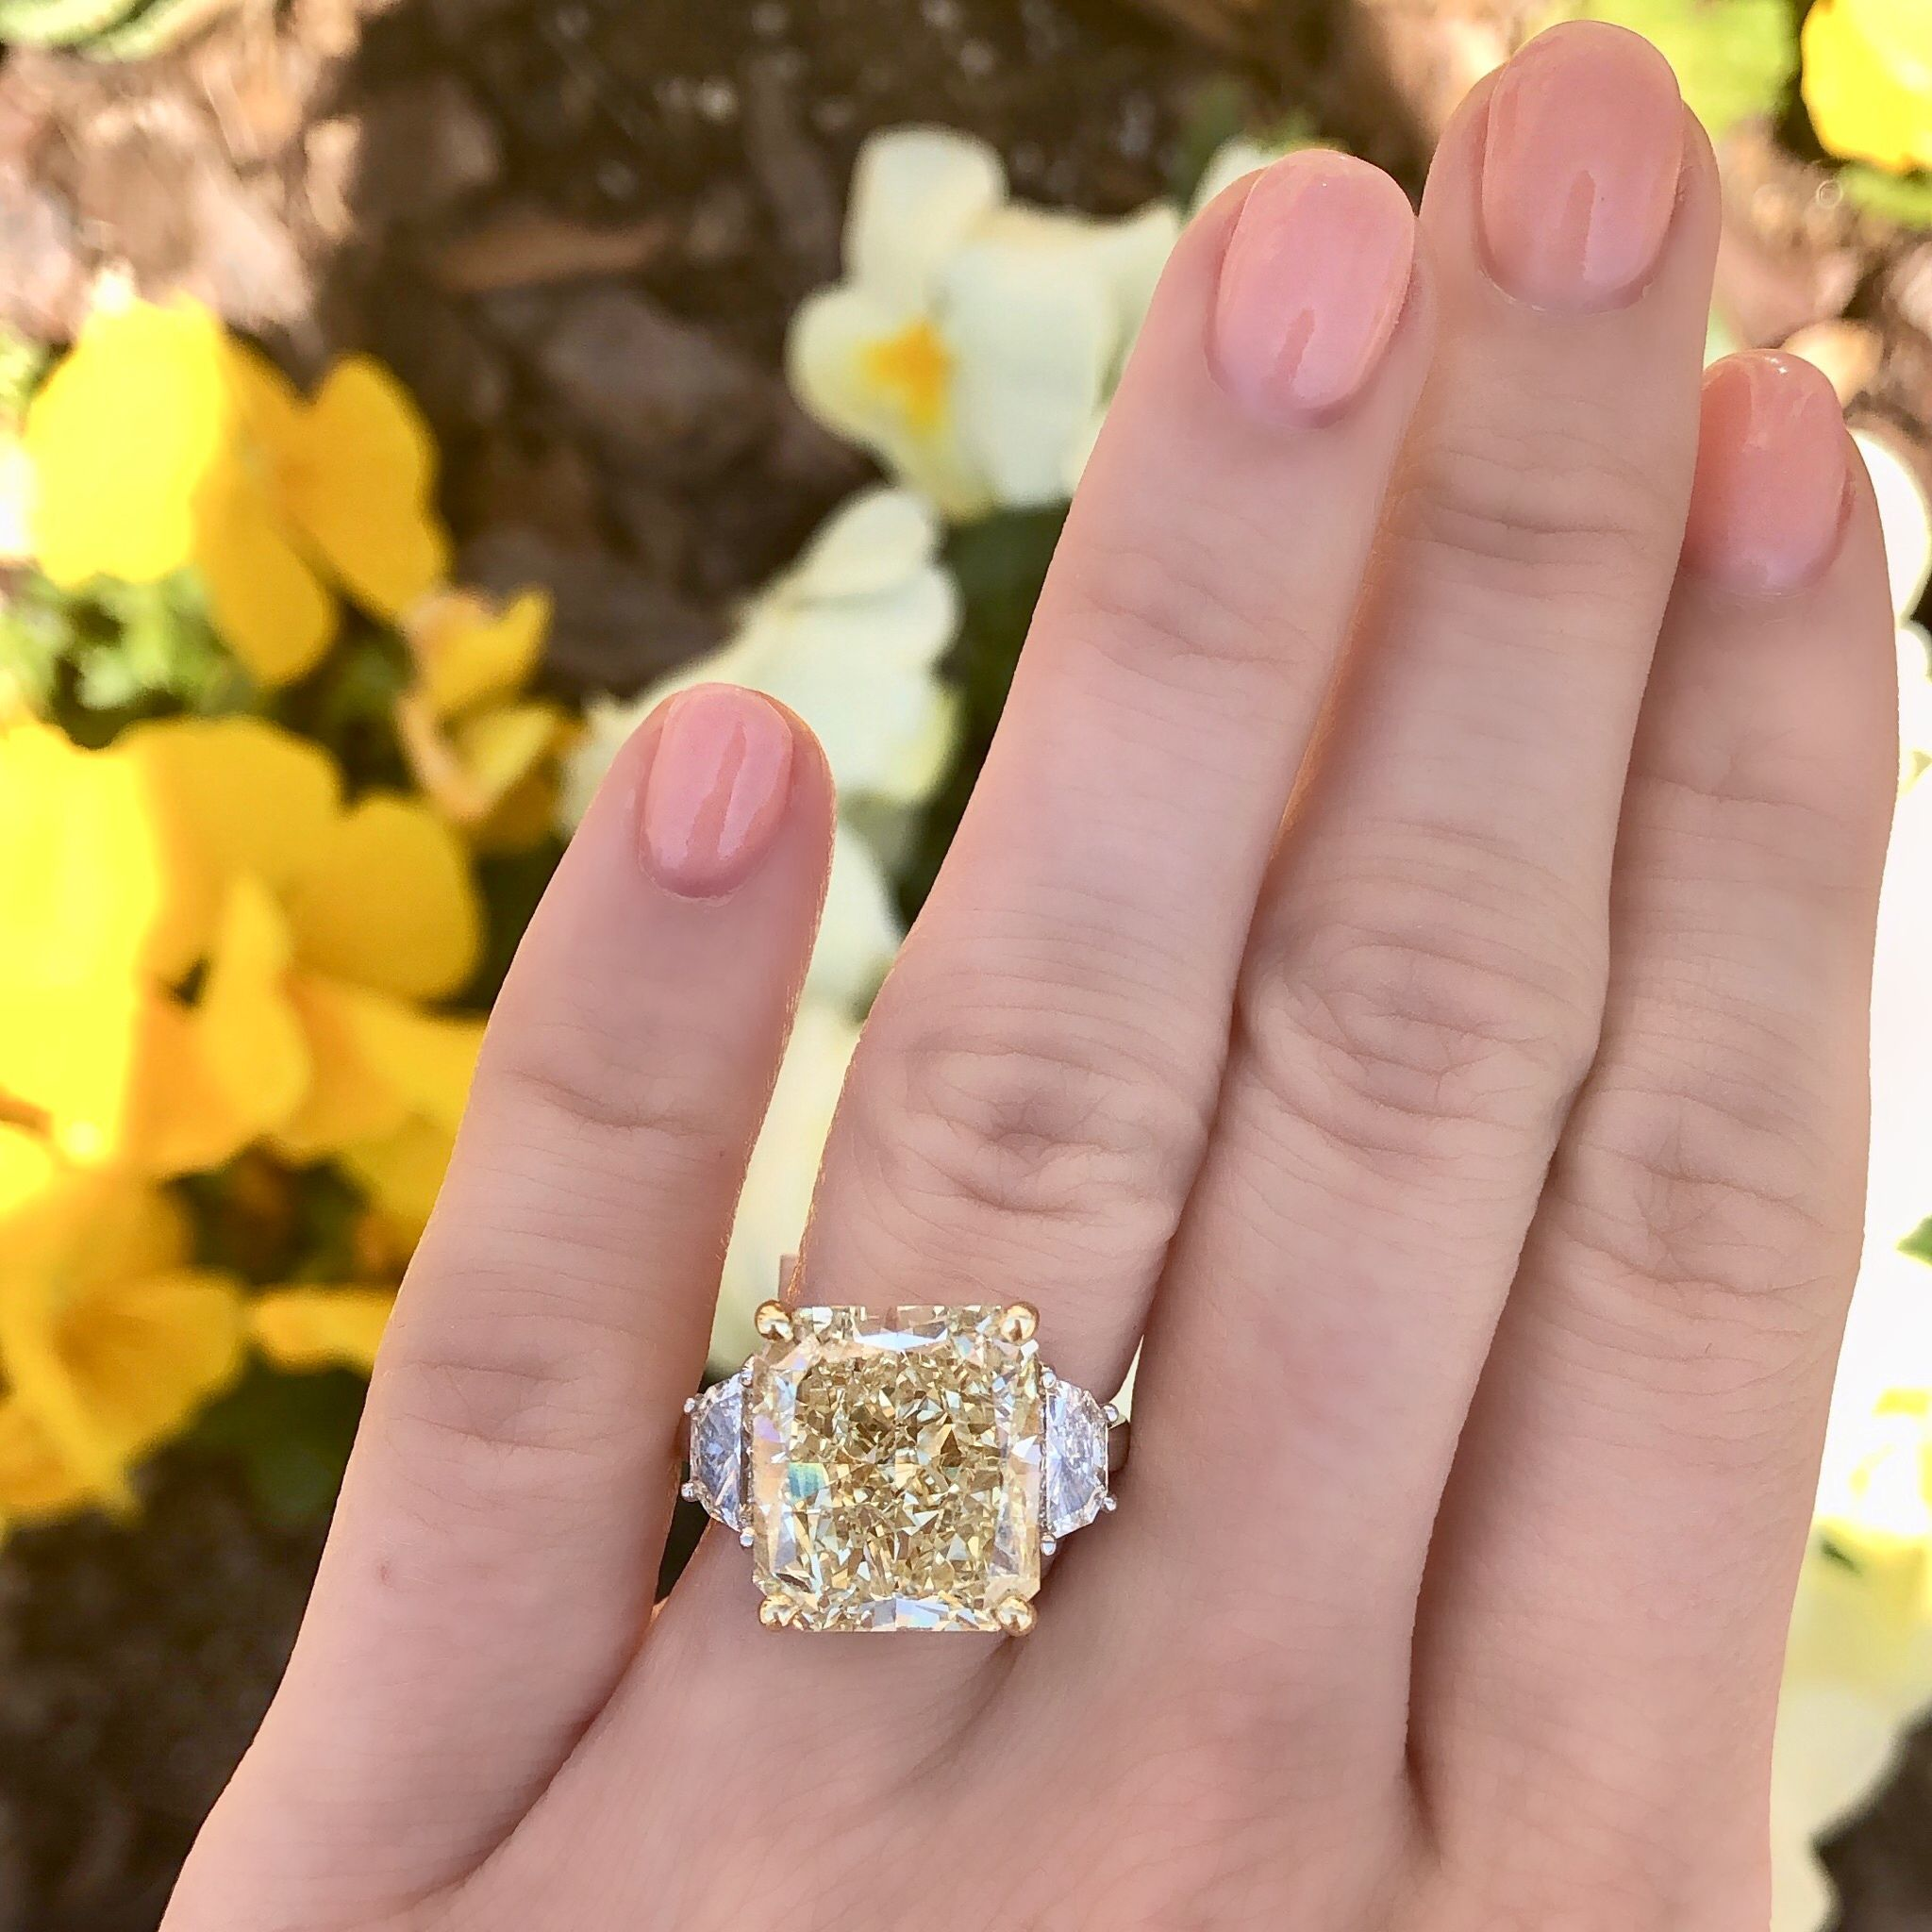 12 Carat Yellow Diamond Engagement Ring In 2020 Yellow Diamond Engagement Ring Best Engagement Rings Favorite Engagement Rings